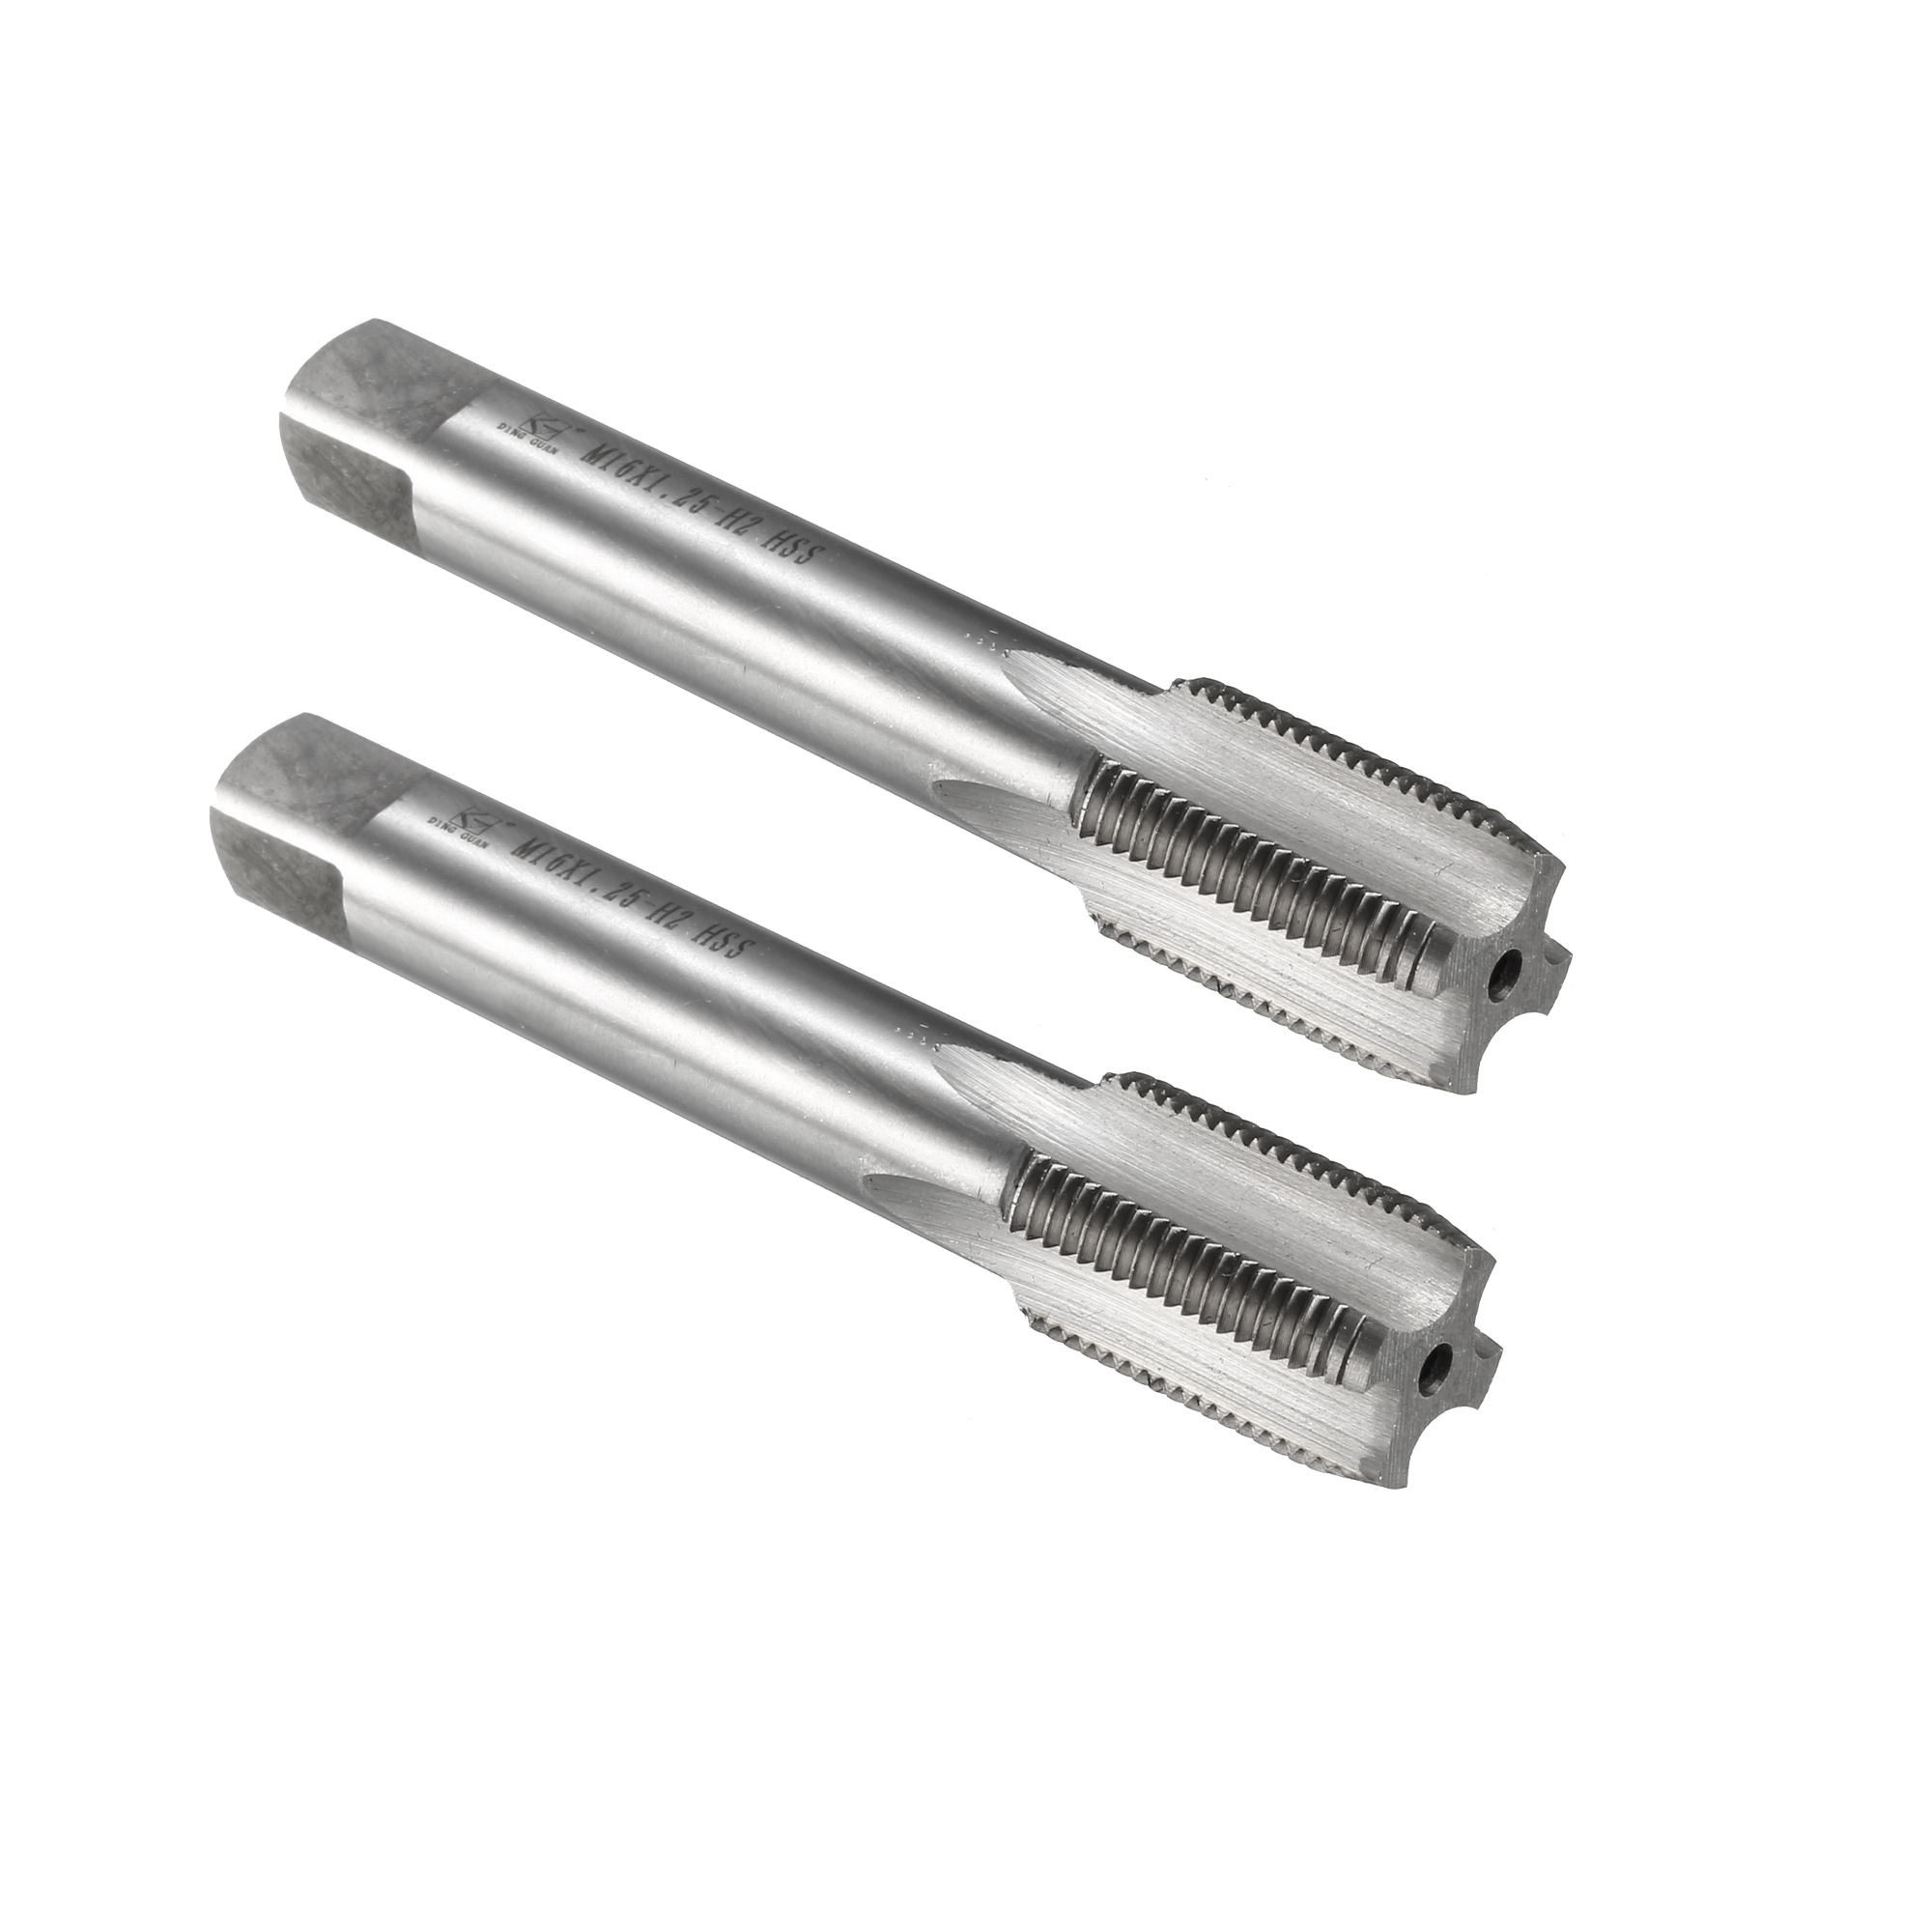 HSS M16 x 1.25mm Tap and M16 x 1.25mm Die Metric Thread Right Hand